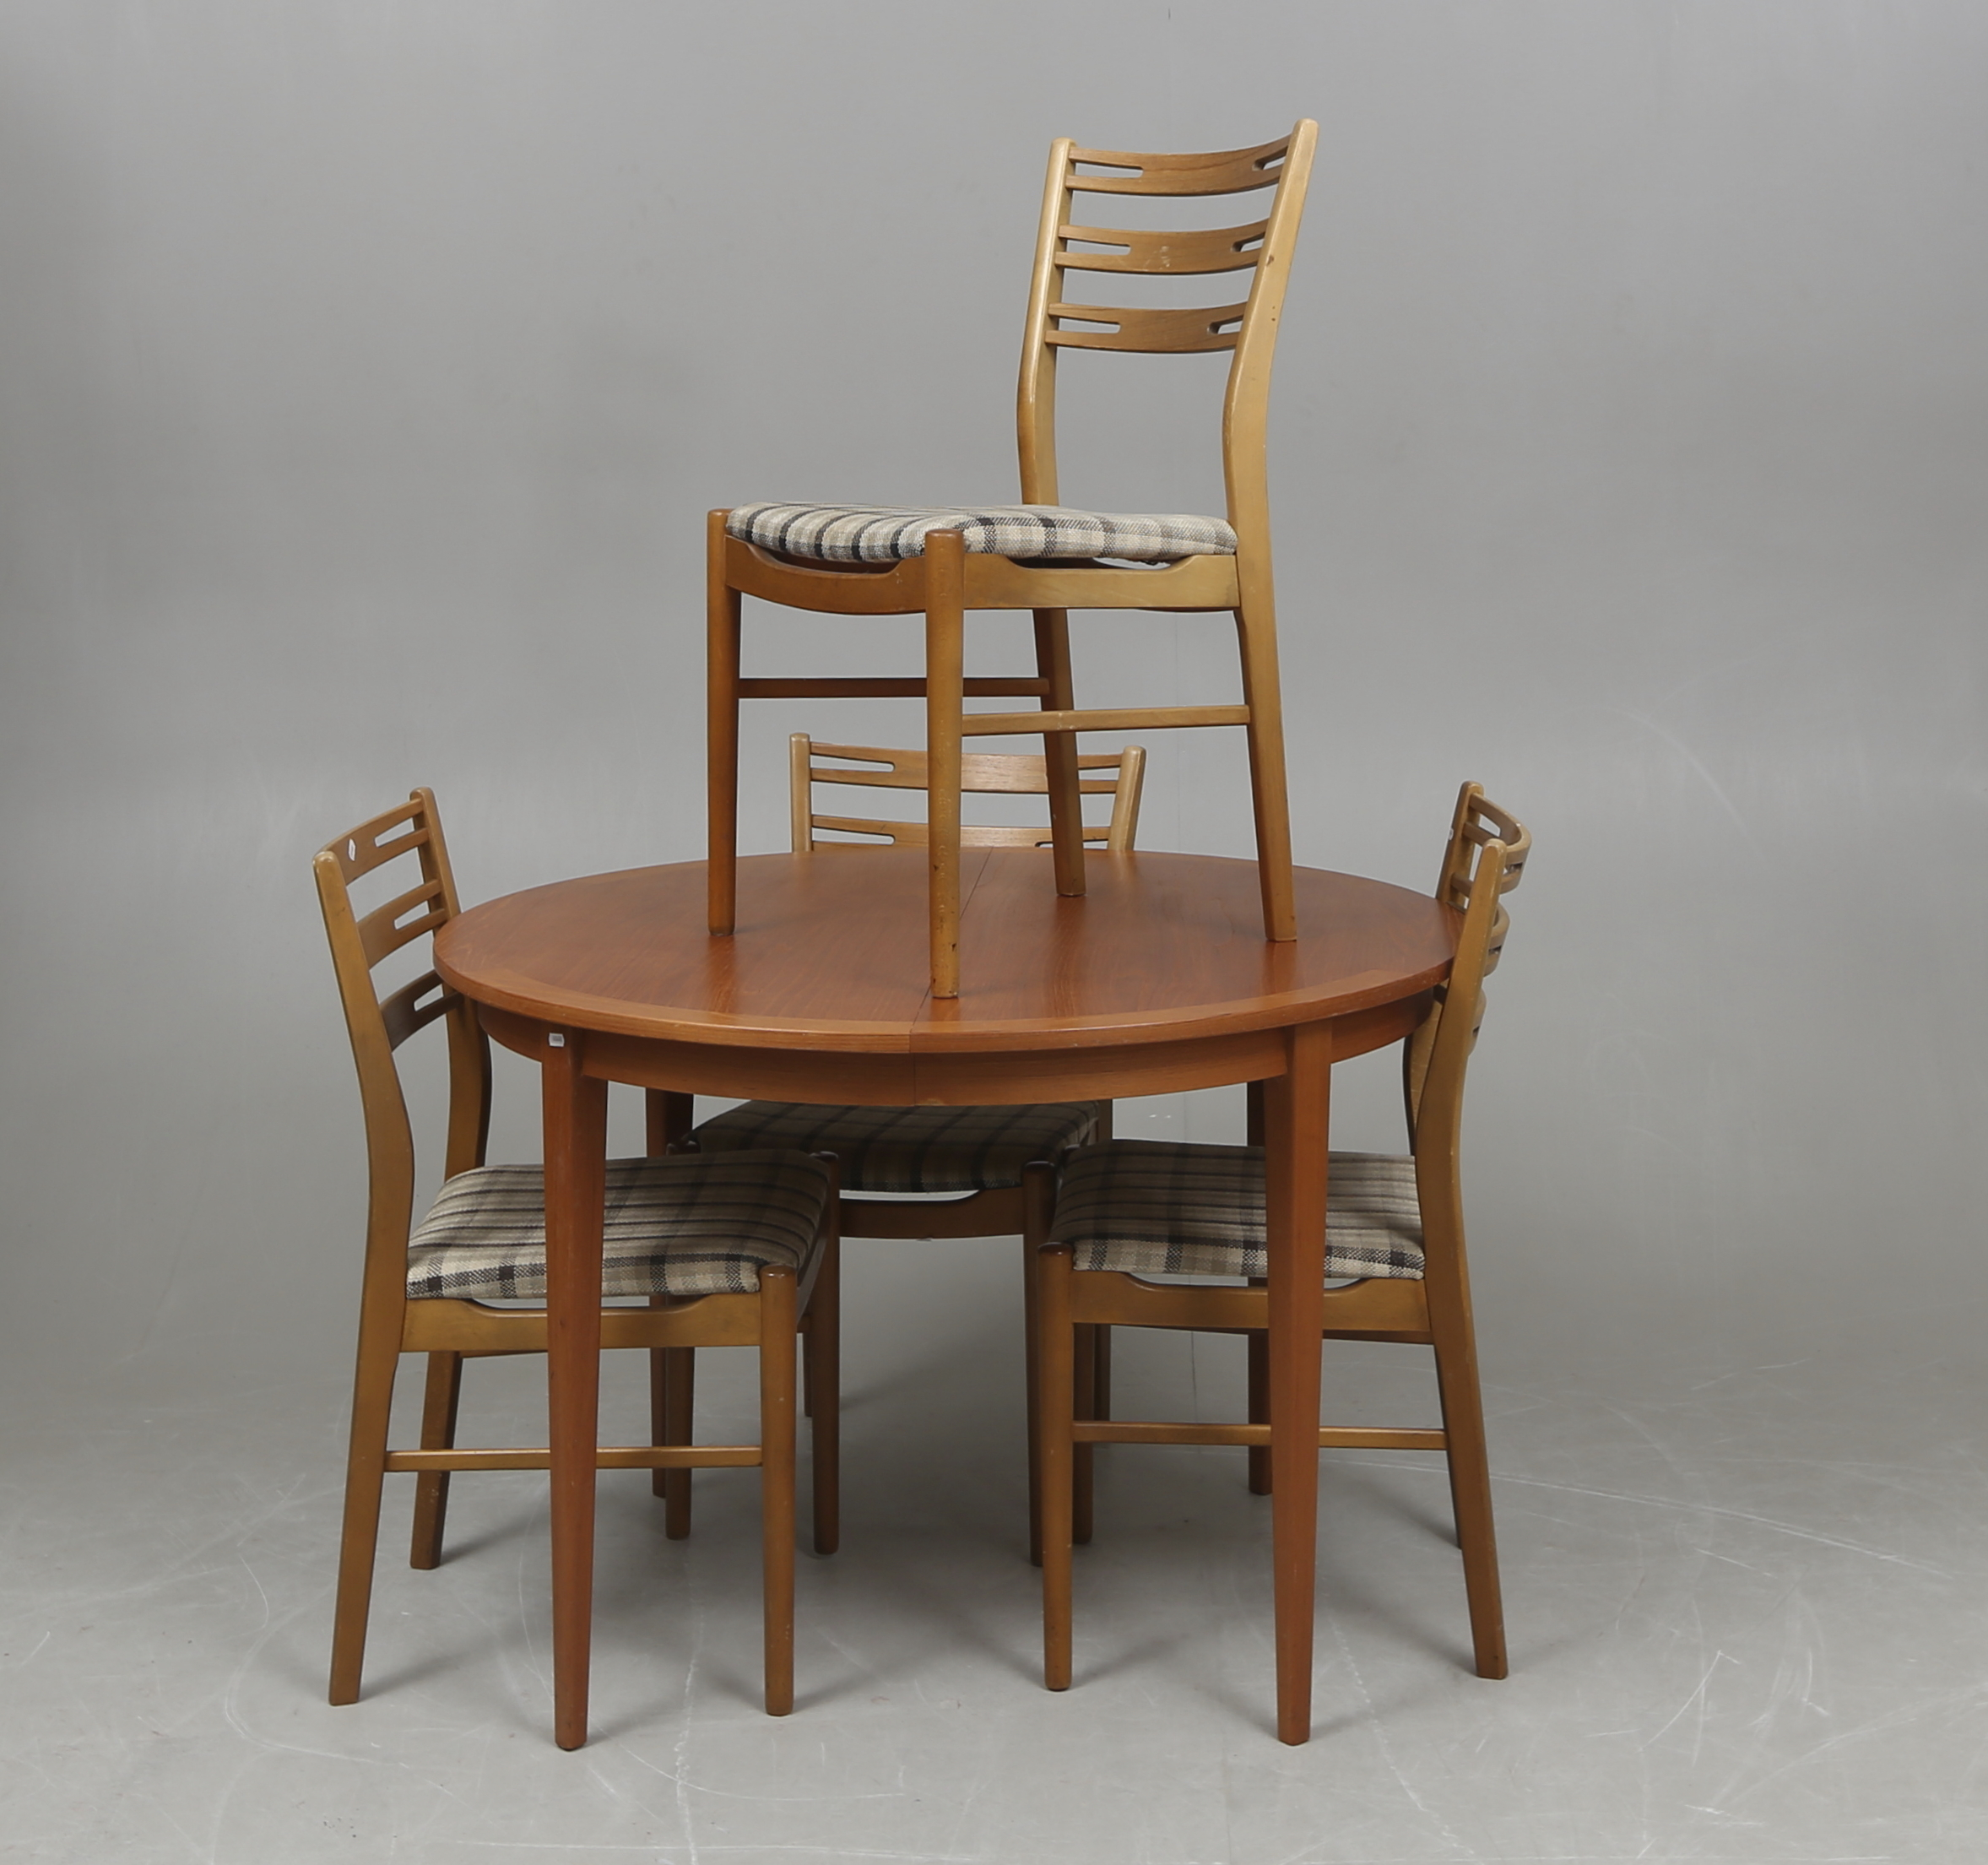 TABLE, 1950s 60s and CHAIRS, 4,